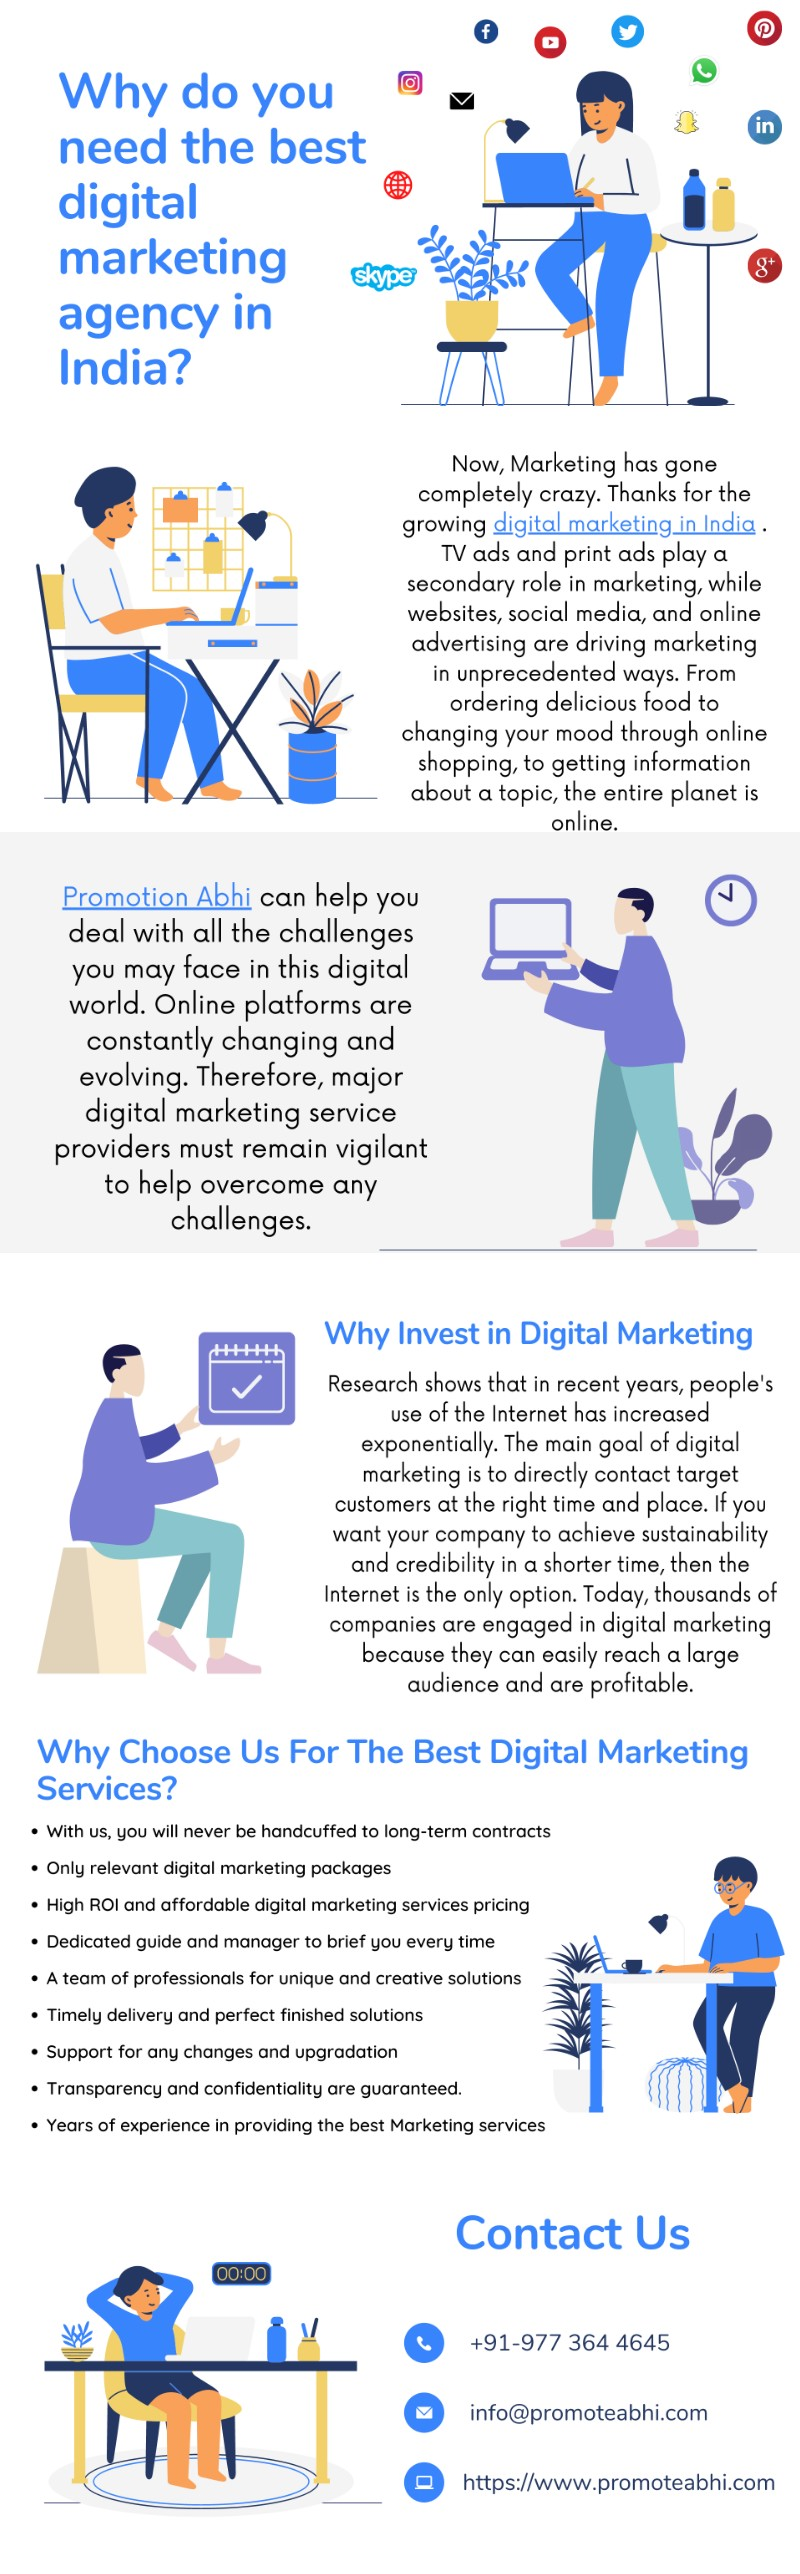 Why do you need the best digital marketing agency in India?